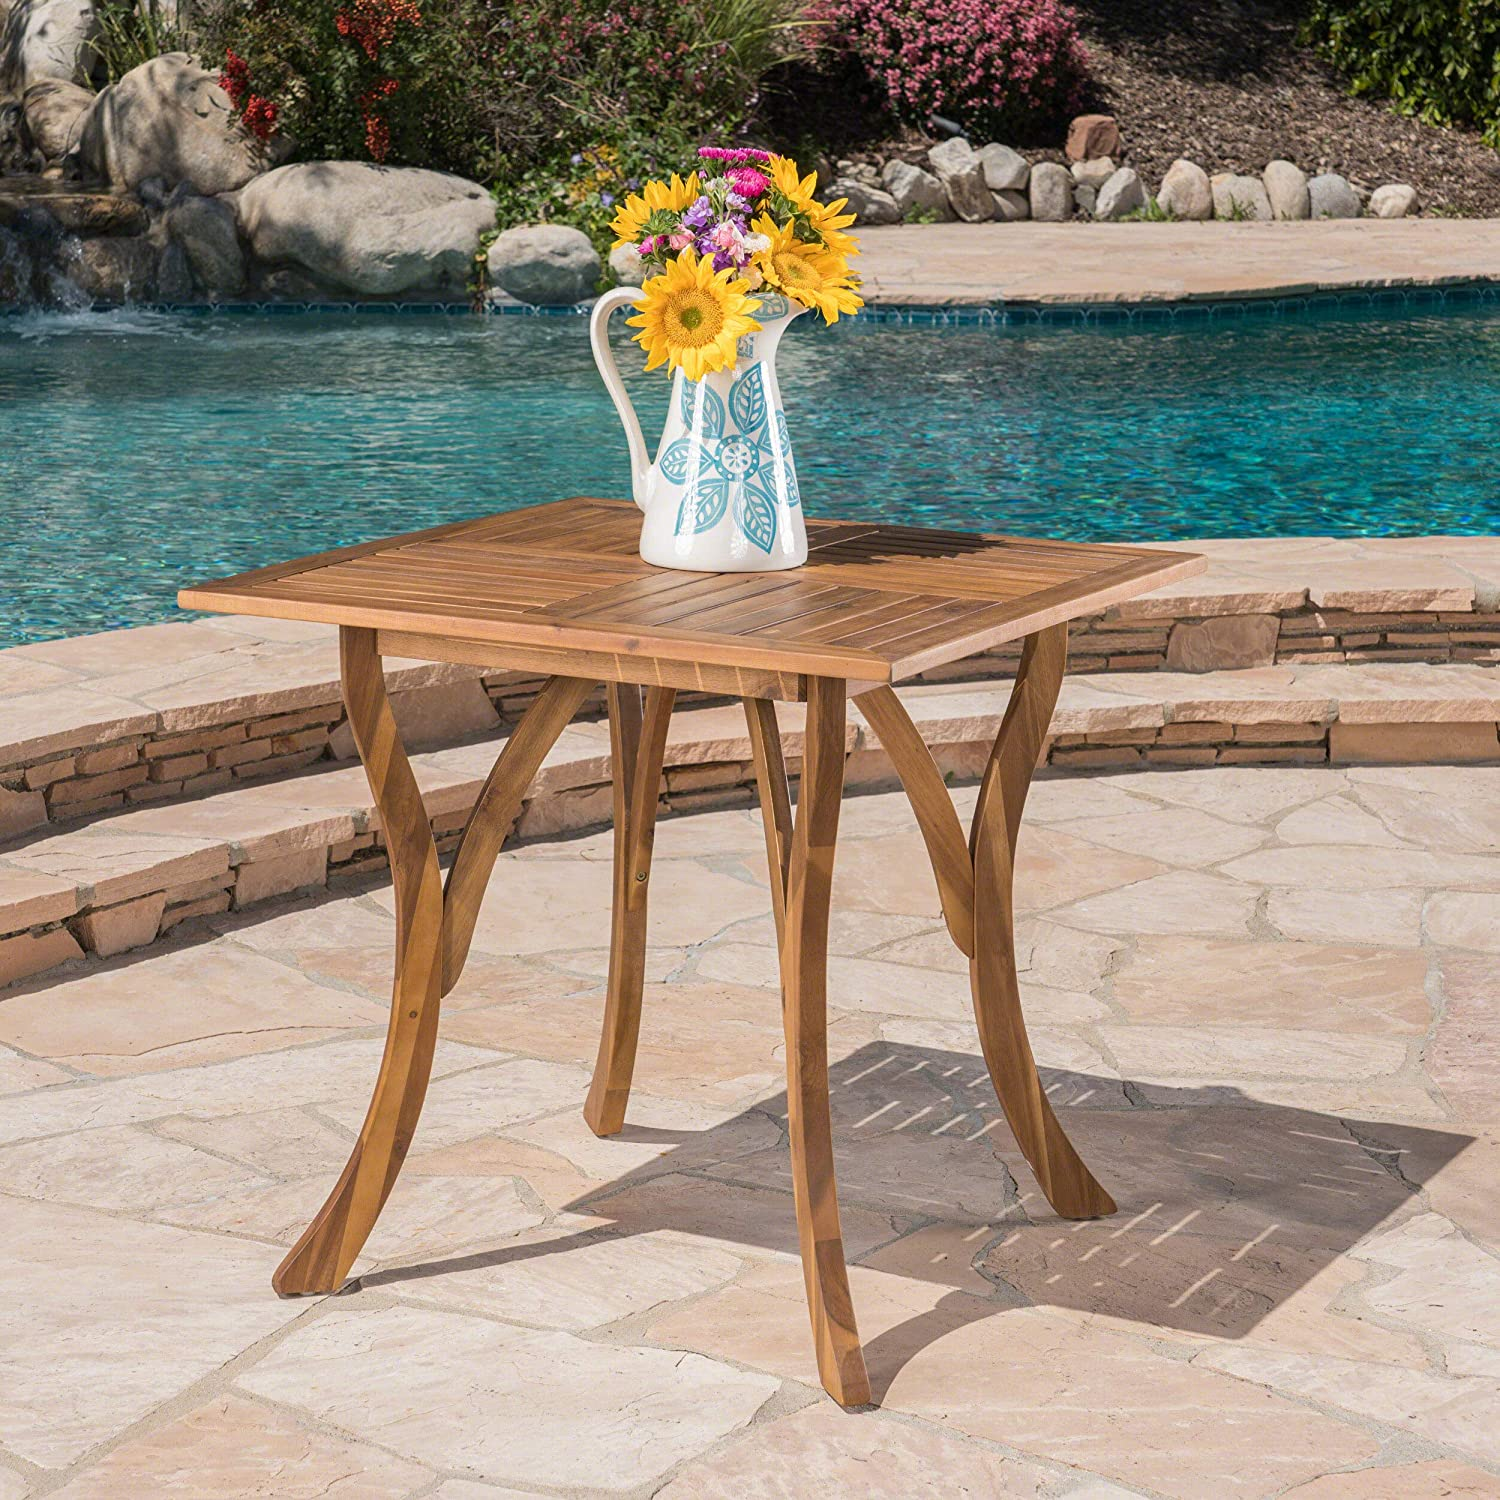 Heritage Outdoor Living Elisabeth Cast Aluminum 42 x87 Oval Table – Antique Bronze